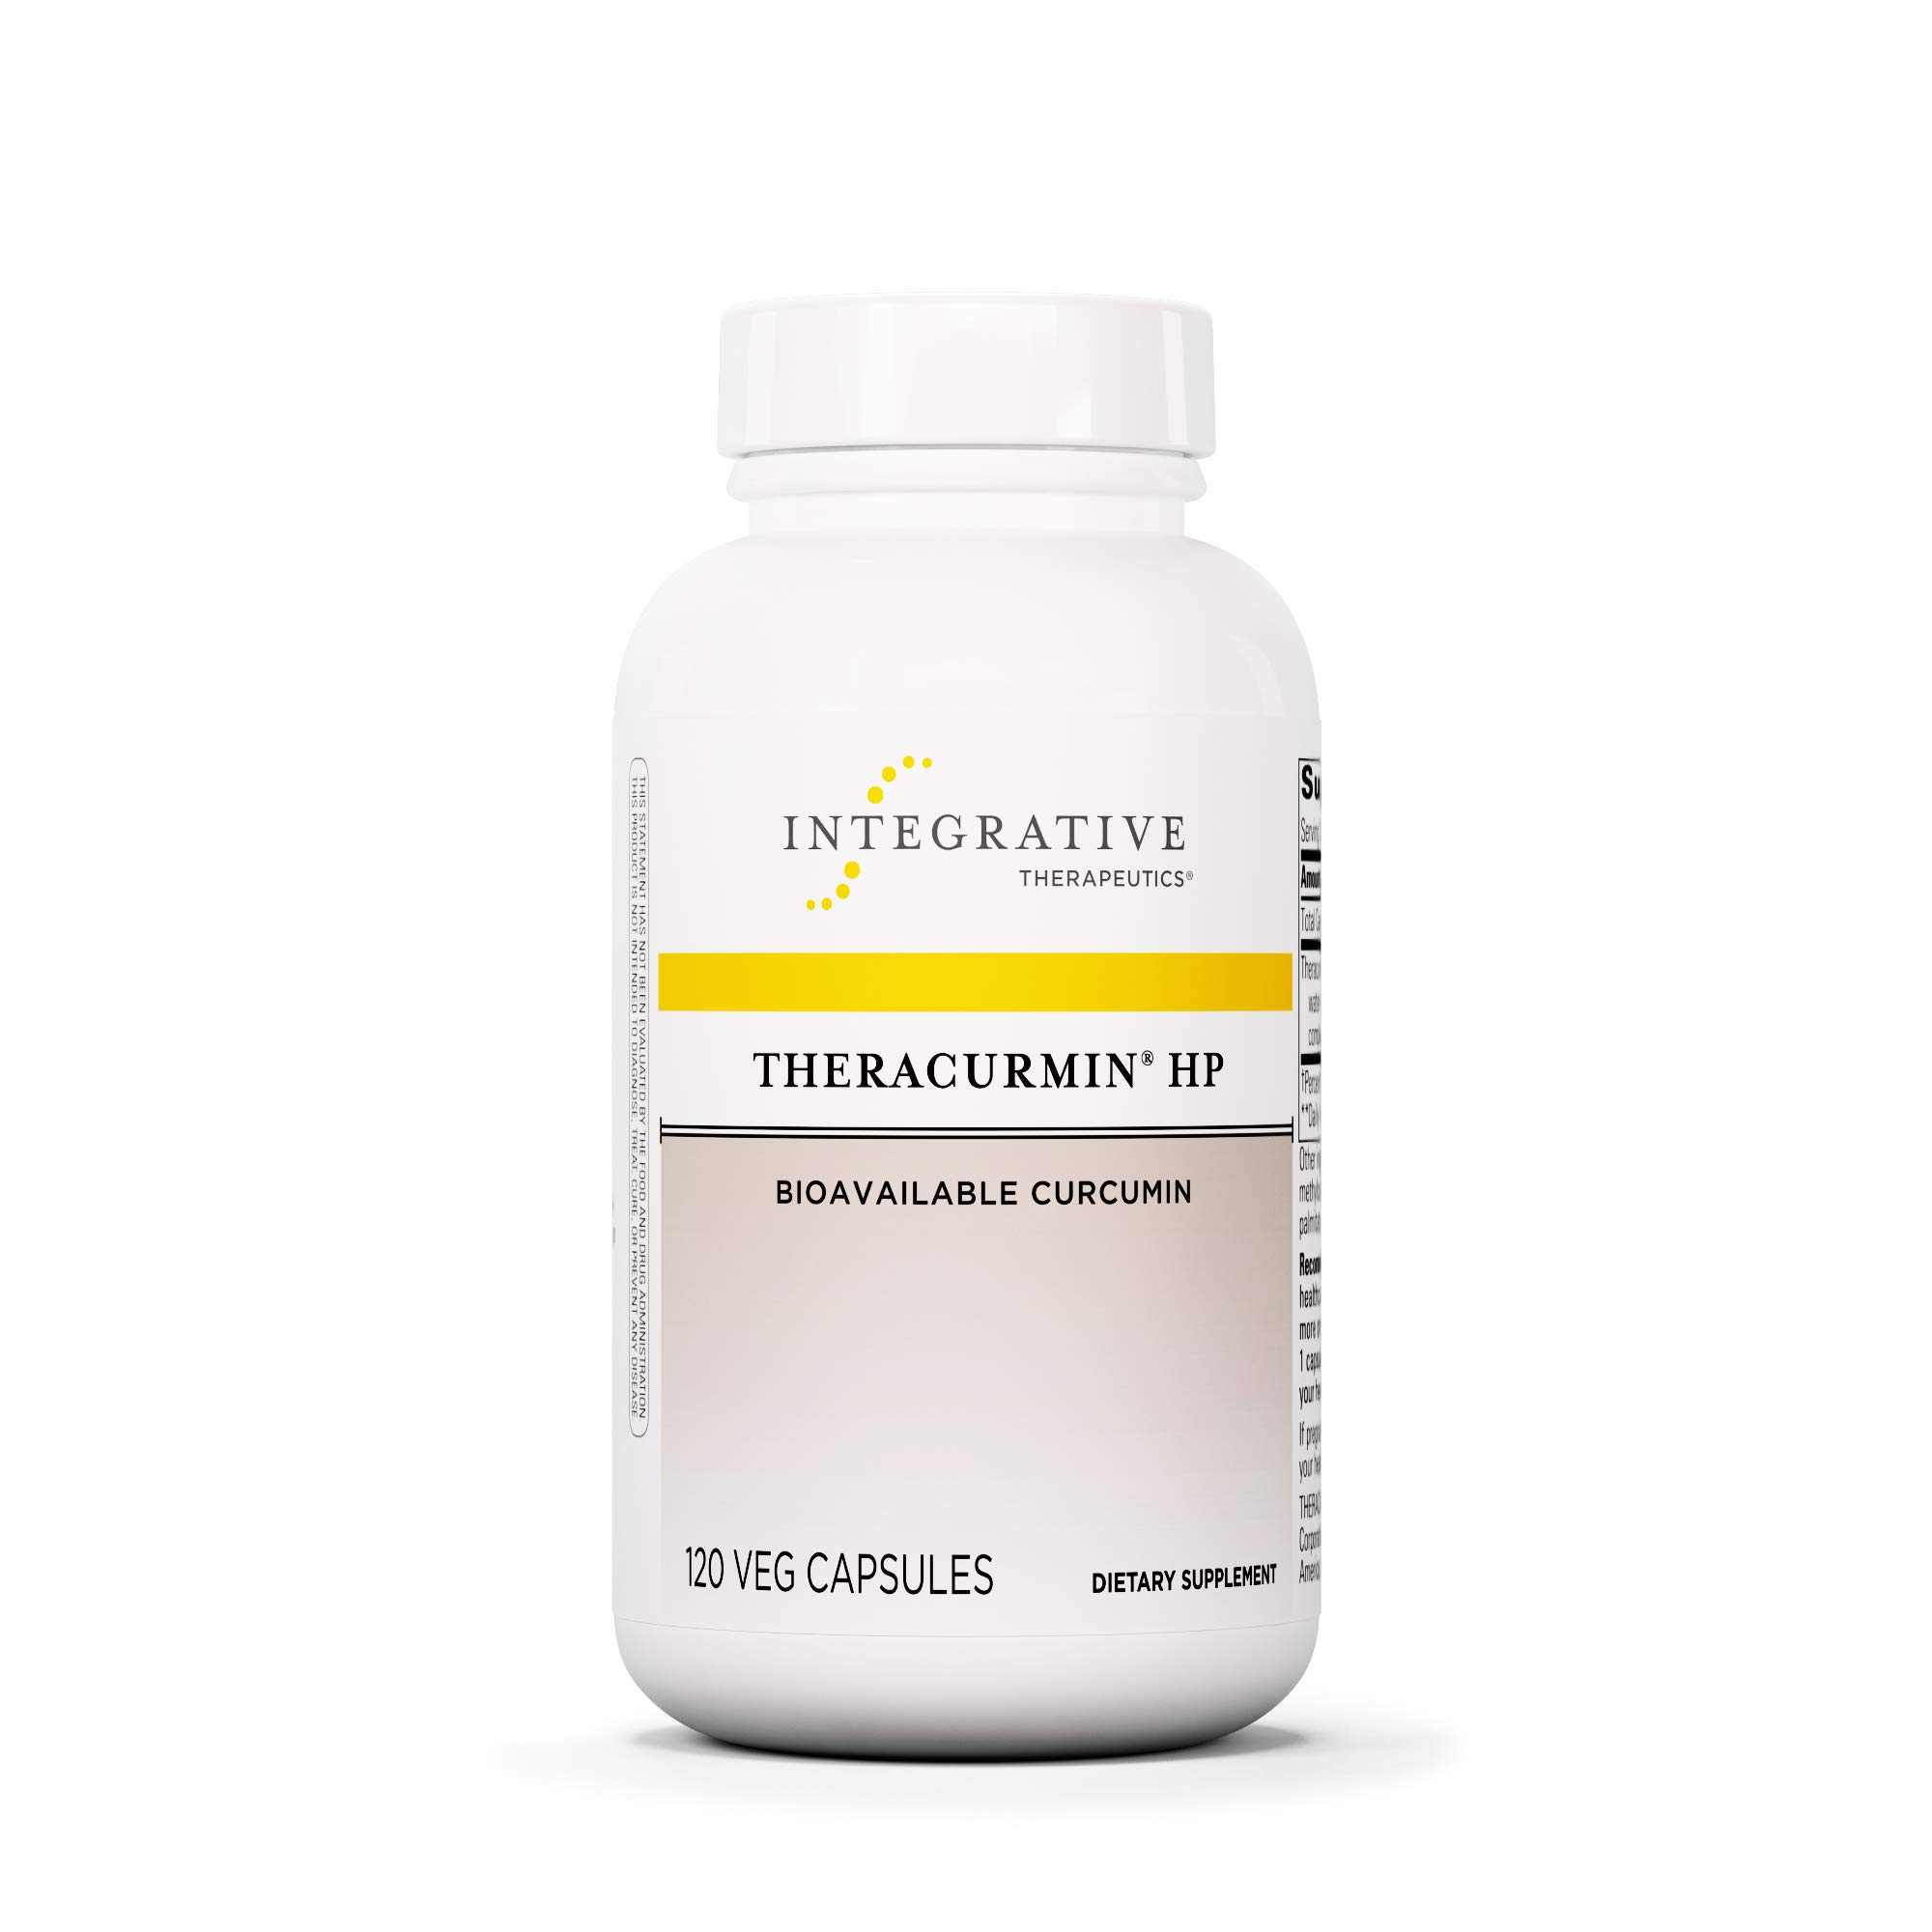 Integrative Therapeutics - Theracurmin HP - Turmeric, Curcumin Supplement - 27x More Bioavailable - High Absorption Turmeric* - Relief of Minor Pain Due to Occasional Overuse* - Vegan - 120 Capsules